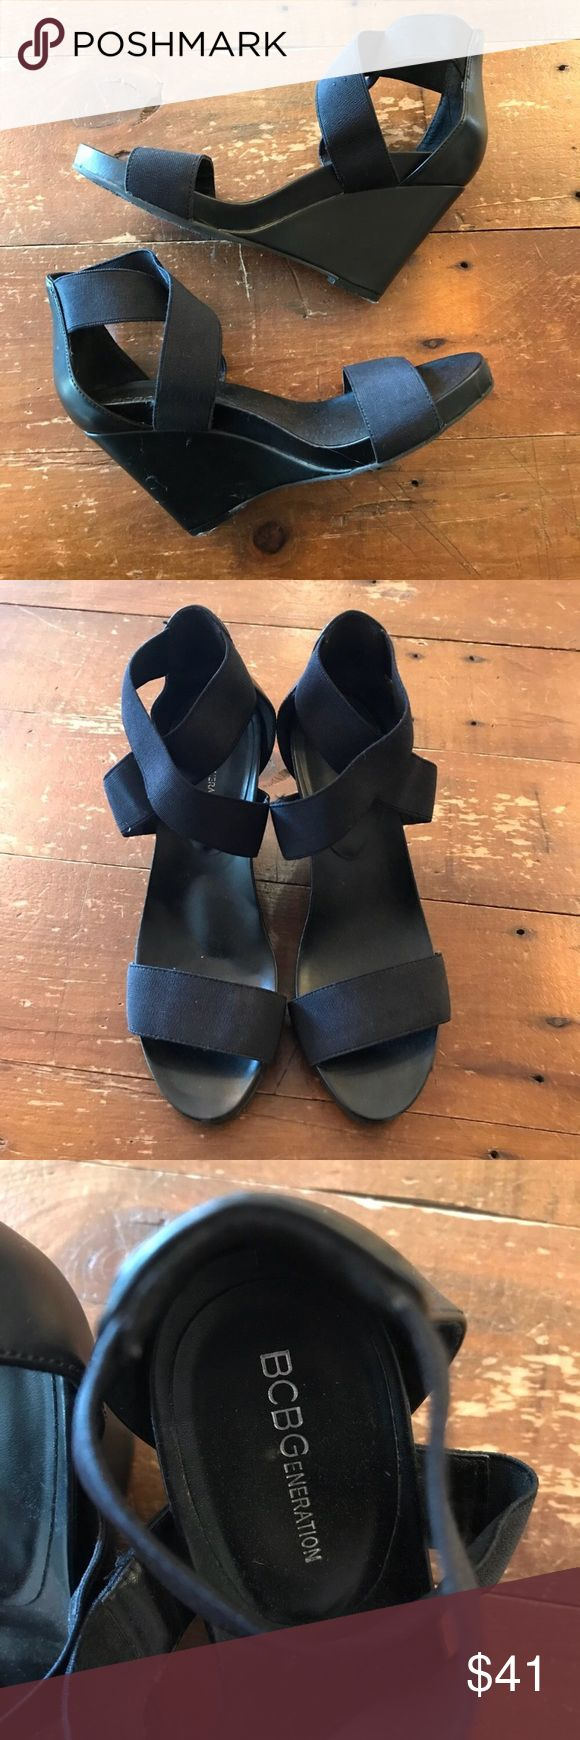 BCBG Comfortable Black Strappy Wedges Size 6.5 I love receiving offers through the offer button! good condition, as seen in pictures! Fast same or next day shipping! Open to offers but I don't negotiate in the comments so please use the offer button! Check out the rest of my closet for more Adidas, Lululemon, Tory Burch, Urban Outfitters, Free People, Anthropologie, Victoria's Secret, Sam Edelman, Topshop, Asos, Revolve, Brandy Melville, Zara, and American Apparel!  18.20.13 BCBG Shoes…